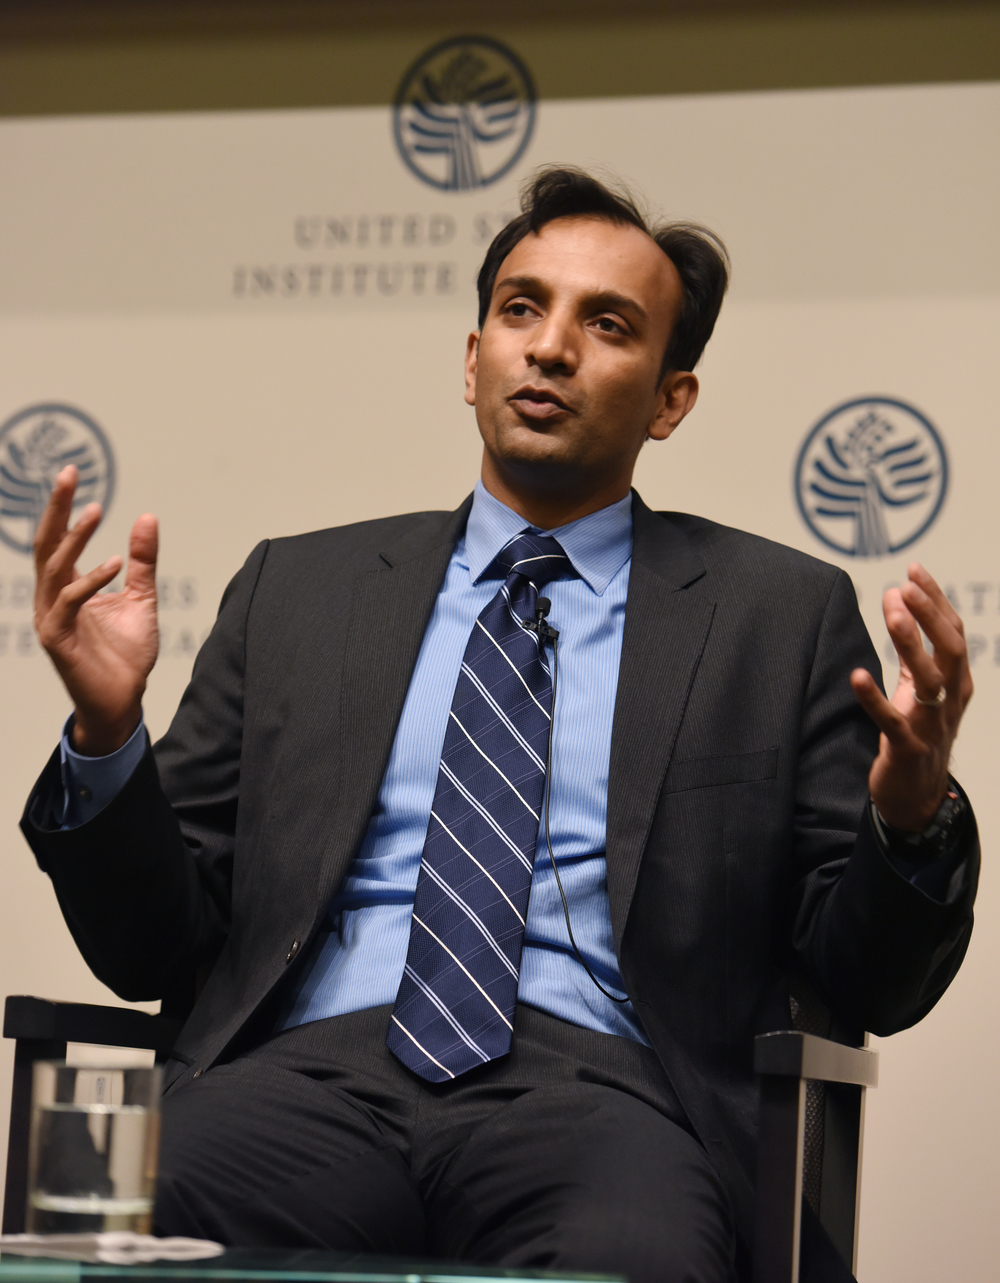 DJ Patil discusses the importance of data